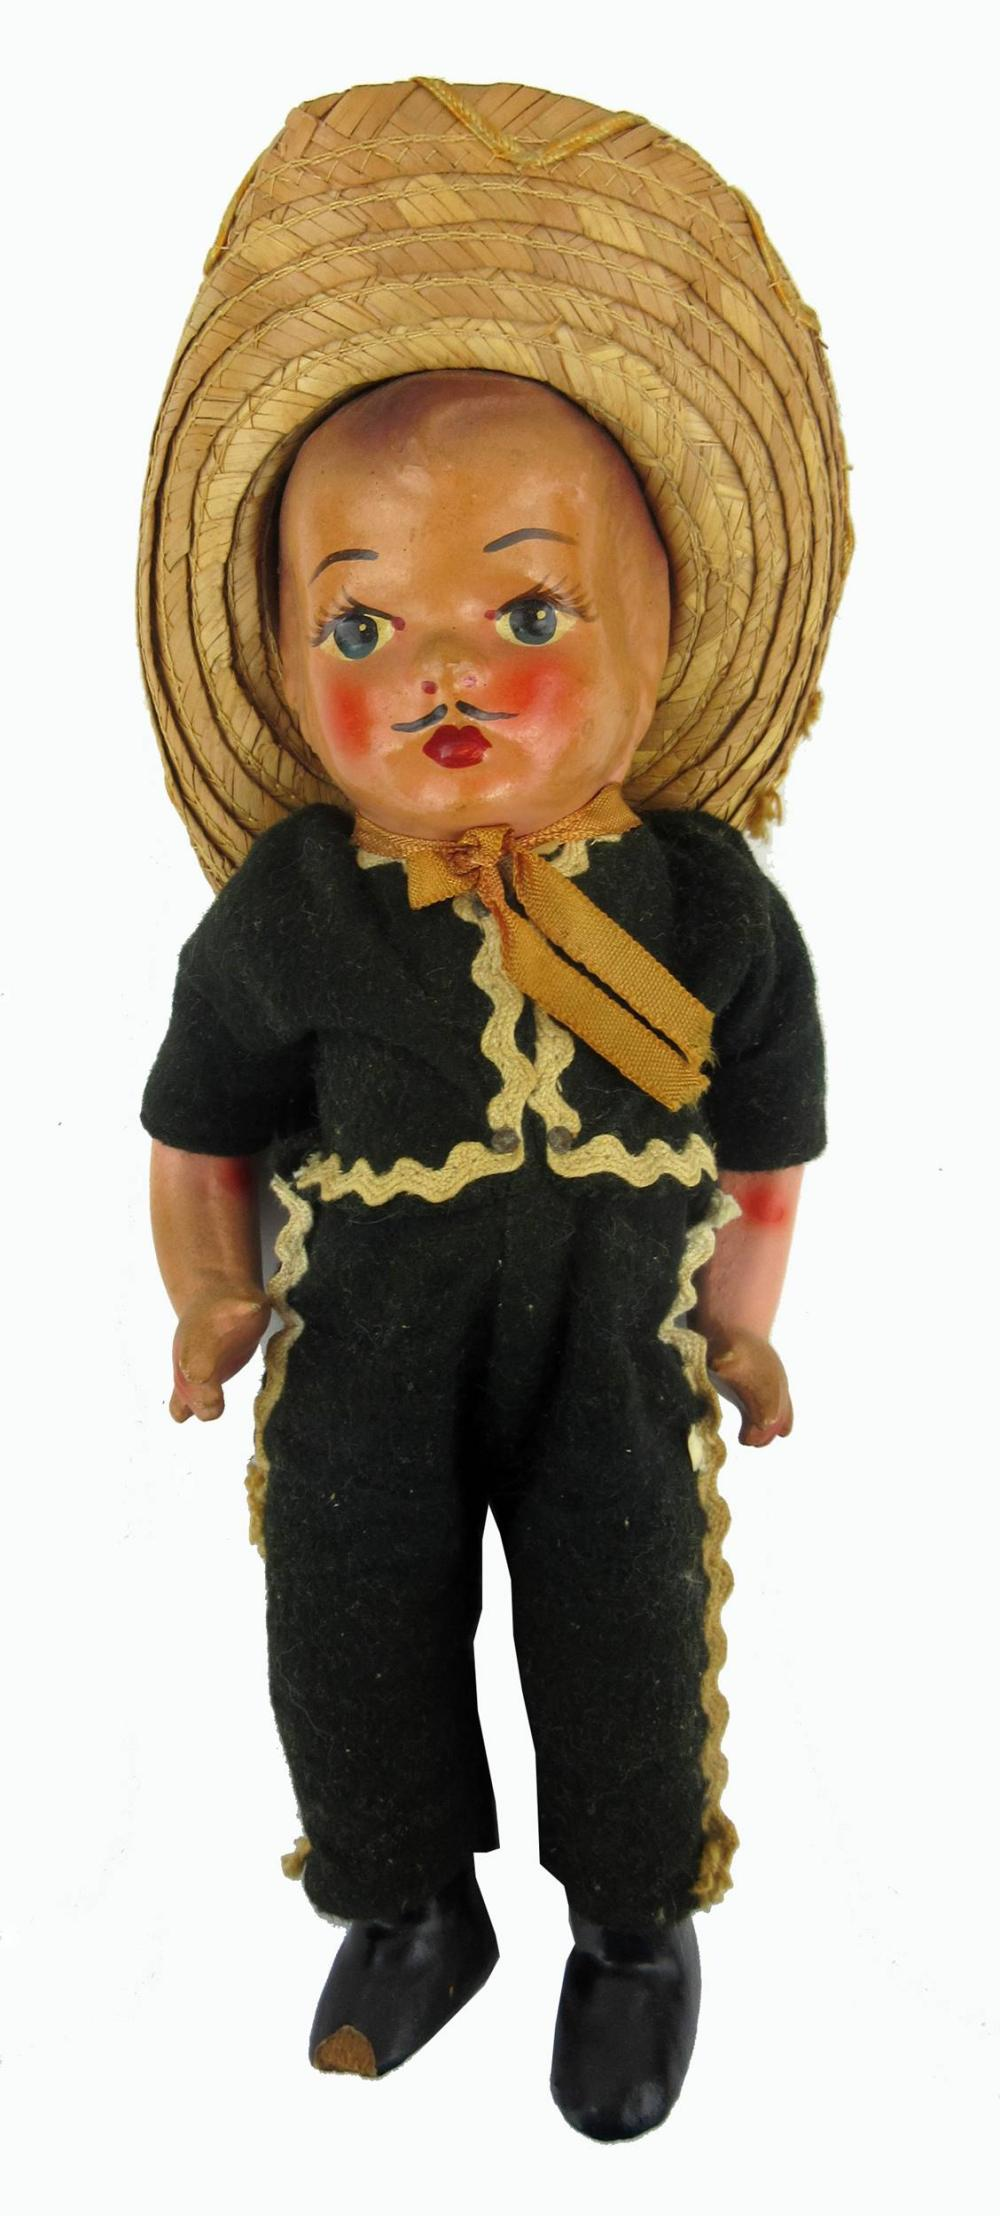 Jack Kerouac's Personally Owned Vintage Hand-Painted Mexican Dolls